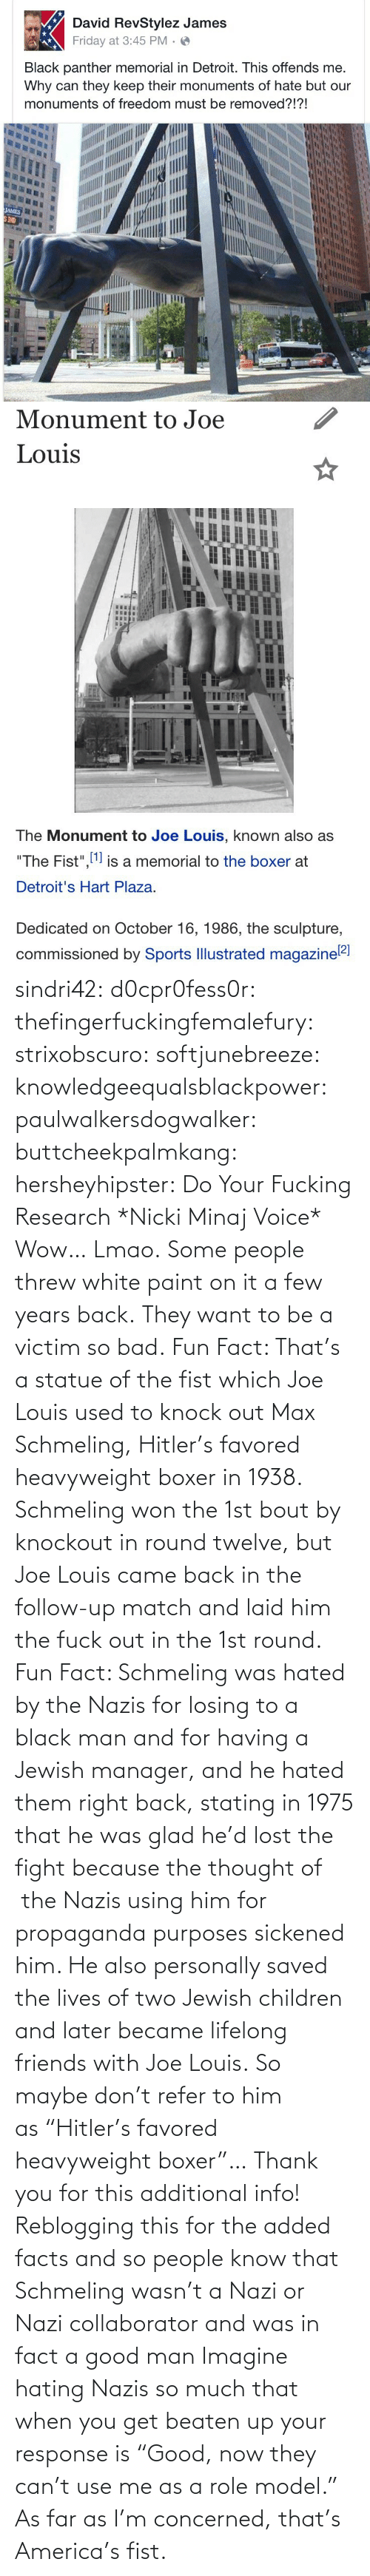 "Good: sindri42:  d0cpr0fess0r:  thefingerfuckingfemalefury:  strixobscuro:  softjunebreeze:  knowledgeequalsblackpower:  paulwalkersdogwalker:   buttcheekpalmkang:   hersheyhipster:  Do Your Fucking Research *Nicki Minaj Voice*    Wow… Lmao.   Some people threw white paint on it a few years back.   They want to be a victim so bad.  Fun Fact: That's a statue of the fist which Joe Louis used to knock out Max Schmeling, Hitler's favored heavyweight boxer in 1938. Schmeling won the 1st bout by knockout in round twelve, but Joe Louis came back in the follow-up match and laid him the fuck out in the 1st round.  Fun Fact: Schmeling was hated by the Nazis for losing to a black man and for having a Jewish manager, and he hated them right back, stating in 1975 that he was glad he'd lost the fight because the thought of  the Nazis using him for propaganda purposes sickened him. He also personally saved the lives of two Jewish children and later became lifelong friends with Joe Louis. So maybe don't refer to him as ""Hitler's favored heavyweight boxer""…  Thank you for this additional info! Reblogging this for the added facts and so people know that Schmeling wasn't a Nazi or Nazi collaborator and was in fact a good man   Imagine hating Nazis so much that when you get beaten up your response is ""Good, now they can't use me as a role model.""  As far as I'm concerned, that's America's fist."